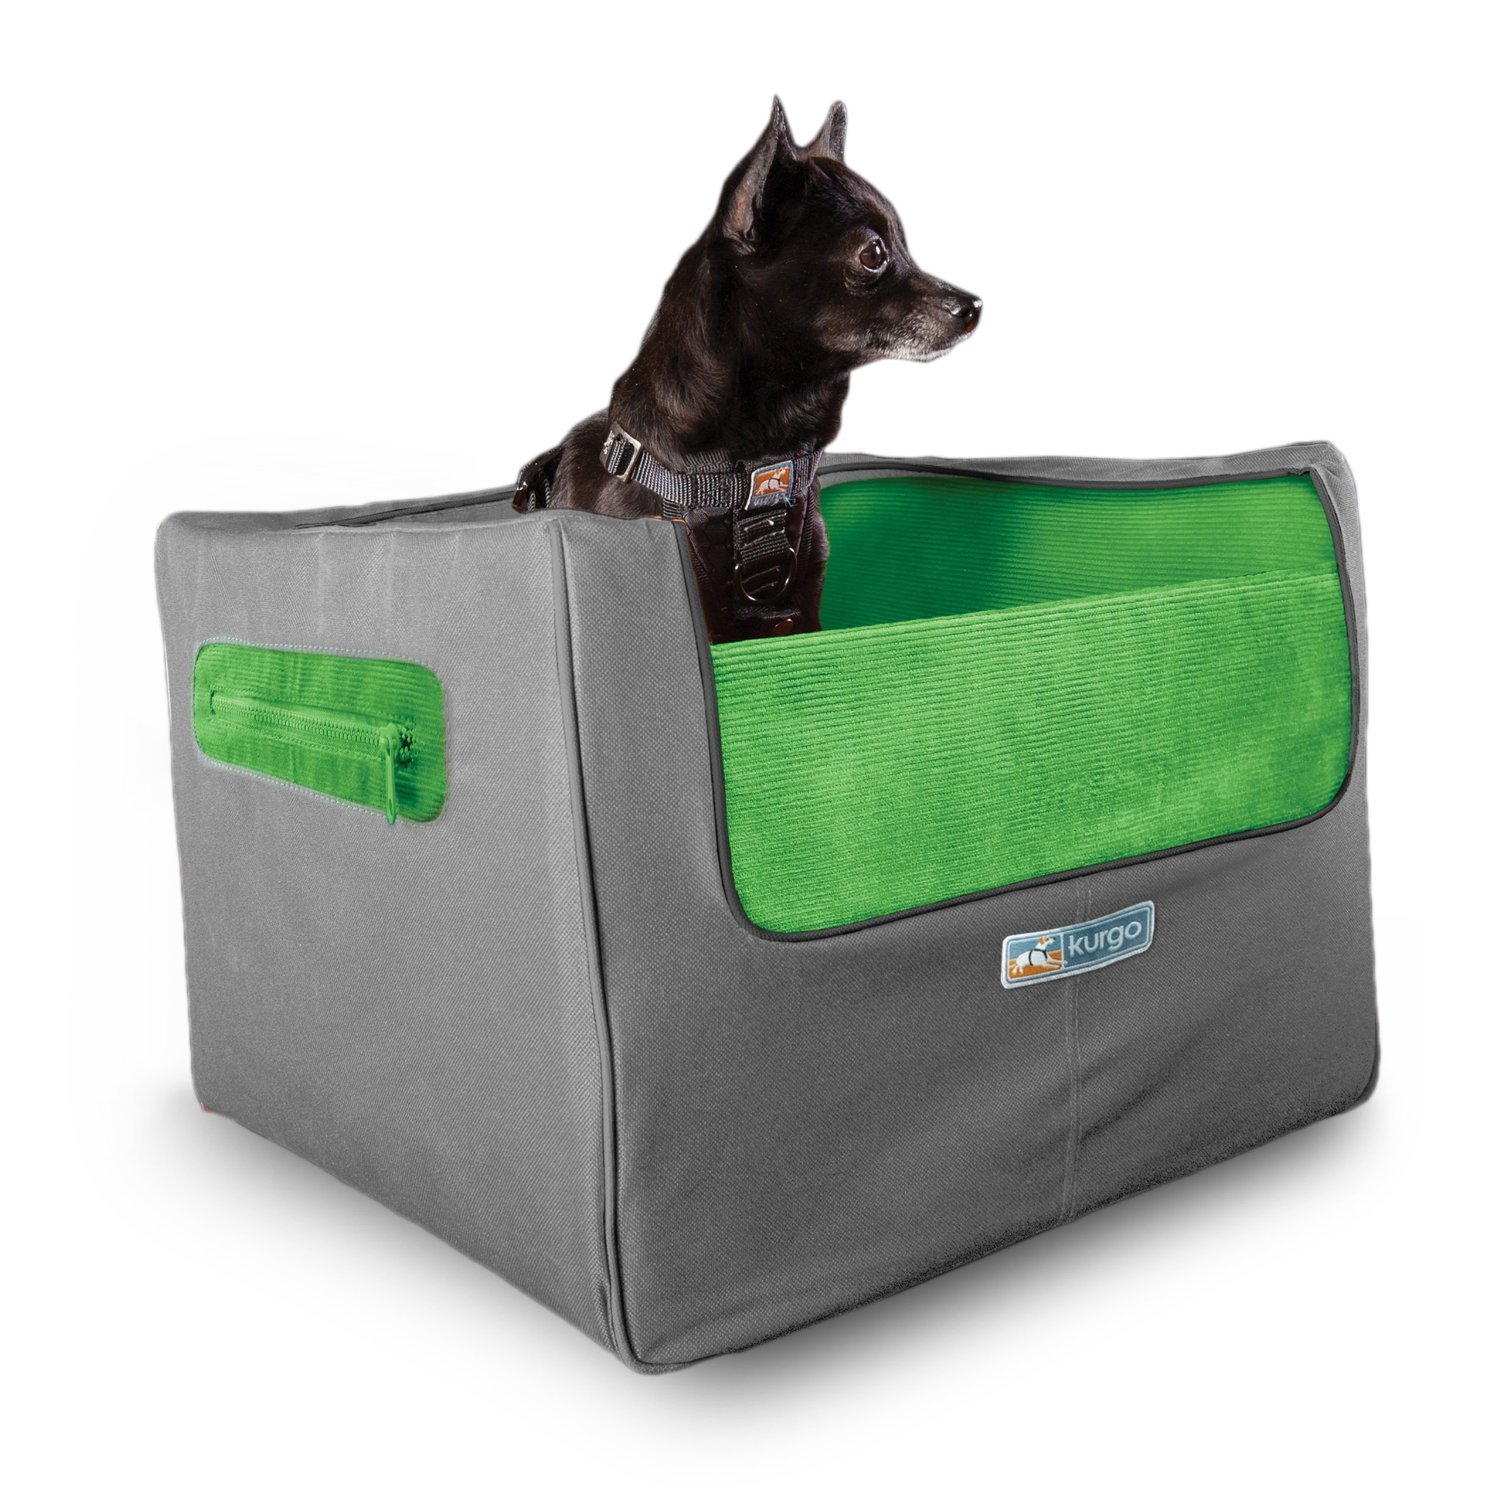 Kurgo Skybox Rear Booster Seat for Dogs & Car Seat for Pets, Includes Seat Belt Tether, Grass Green/Charcoal